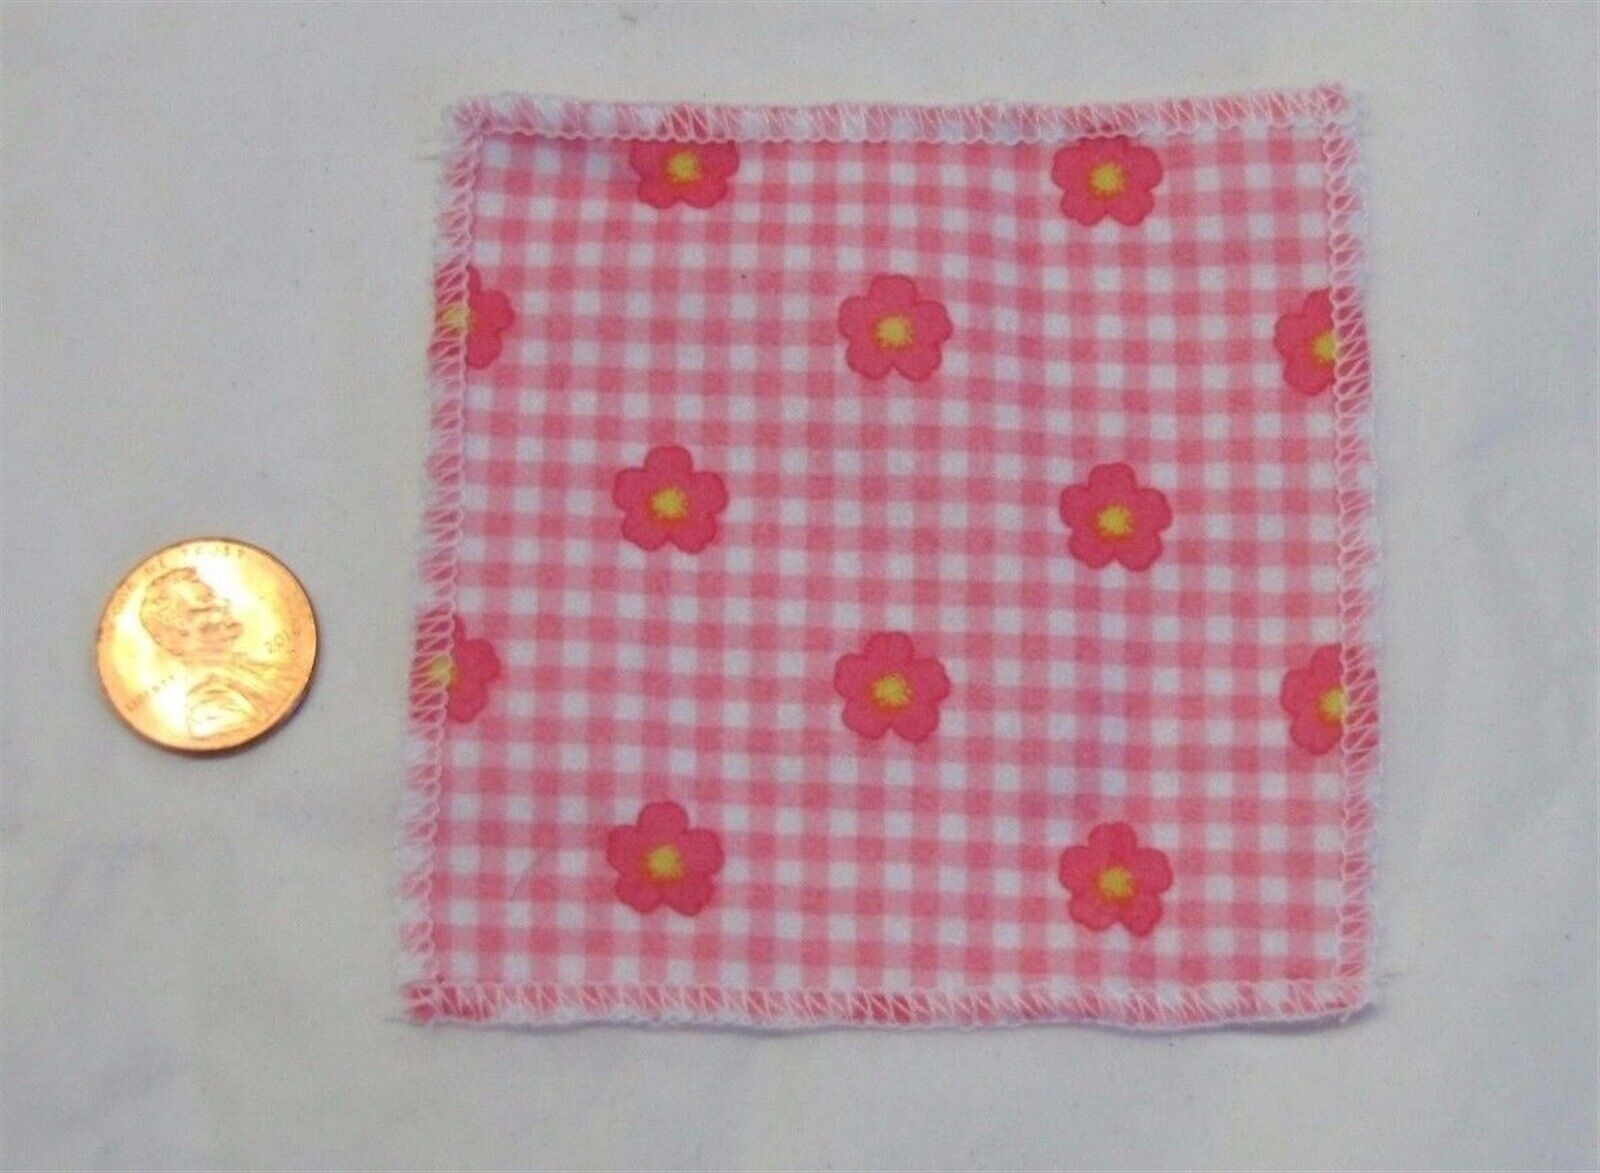 New! FISHER PRICE Loving Family Dollhouse FLORAL BLANKET for